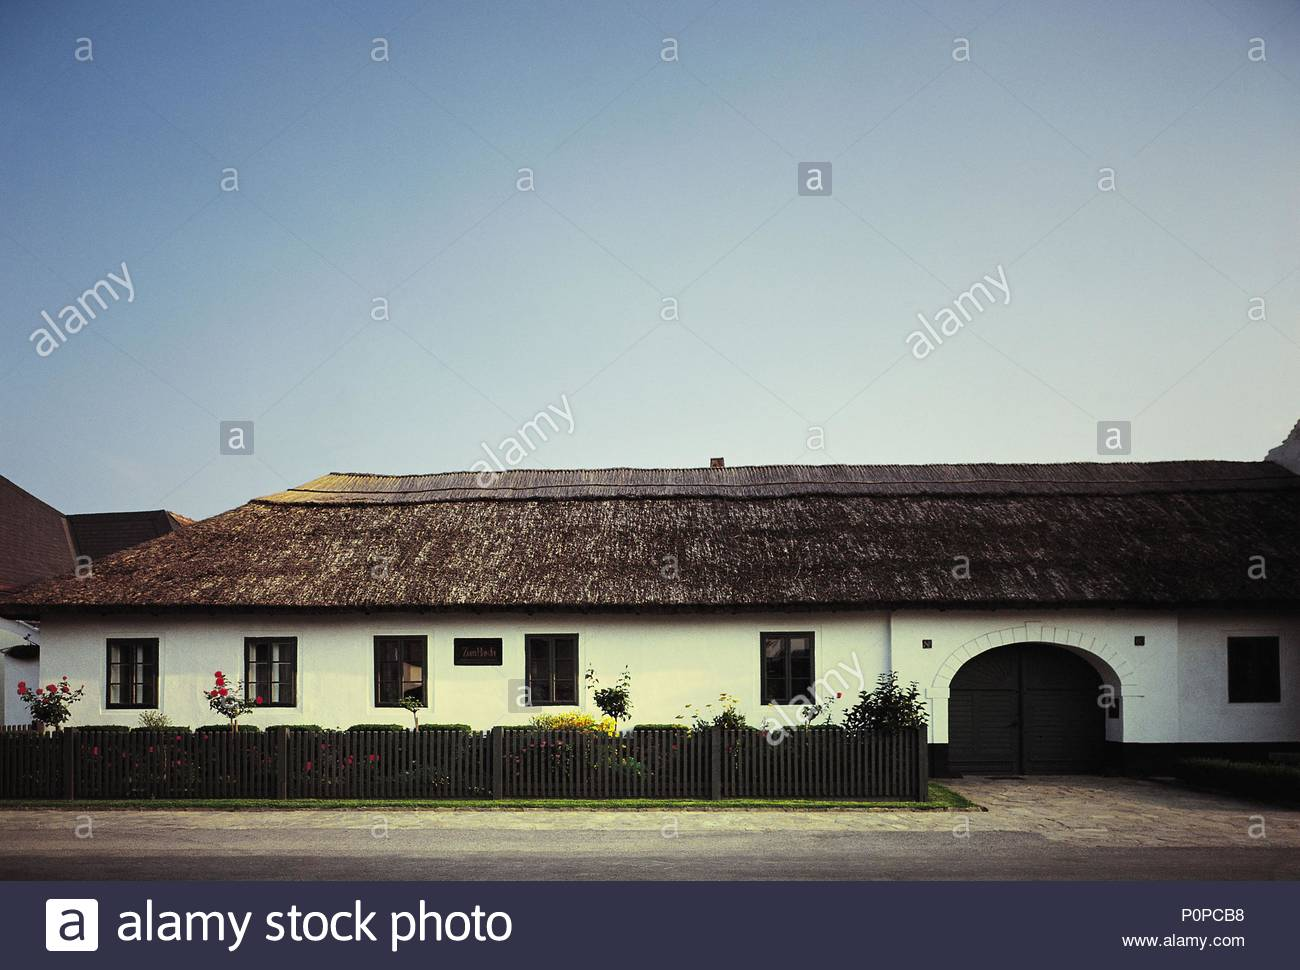 The straw-thatched farmhouse in Rohrau, Austria, where Joseph Haydn was born and where his father worked as a wheelwright. Location: Haydn Museum, Rohrau, Austria. - Stock Image